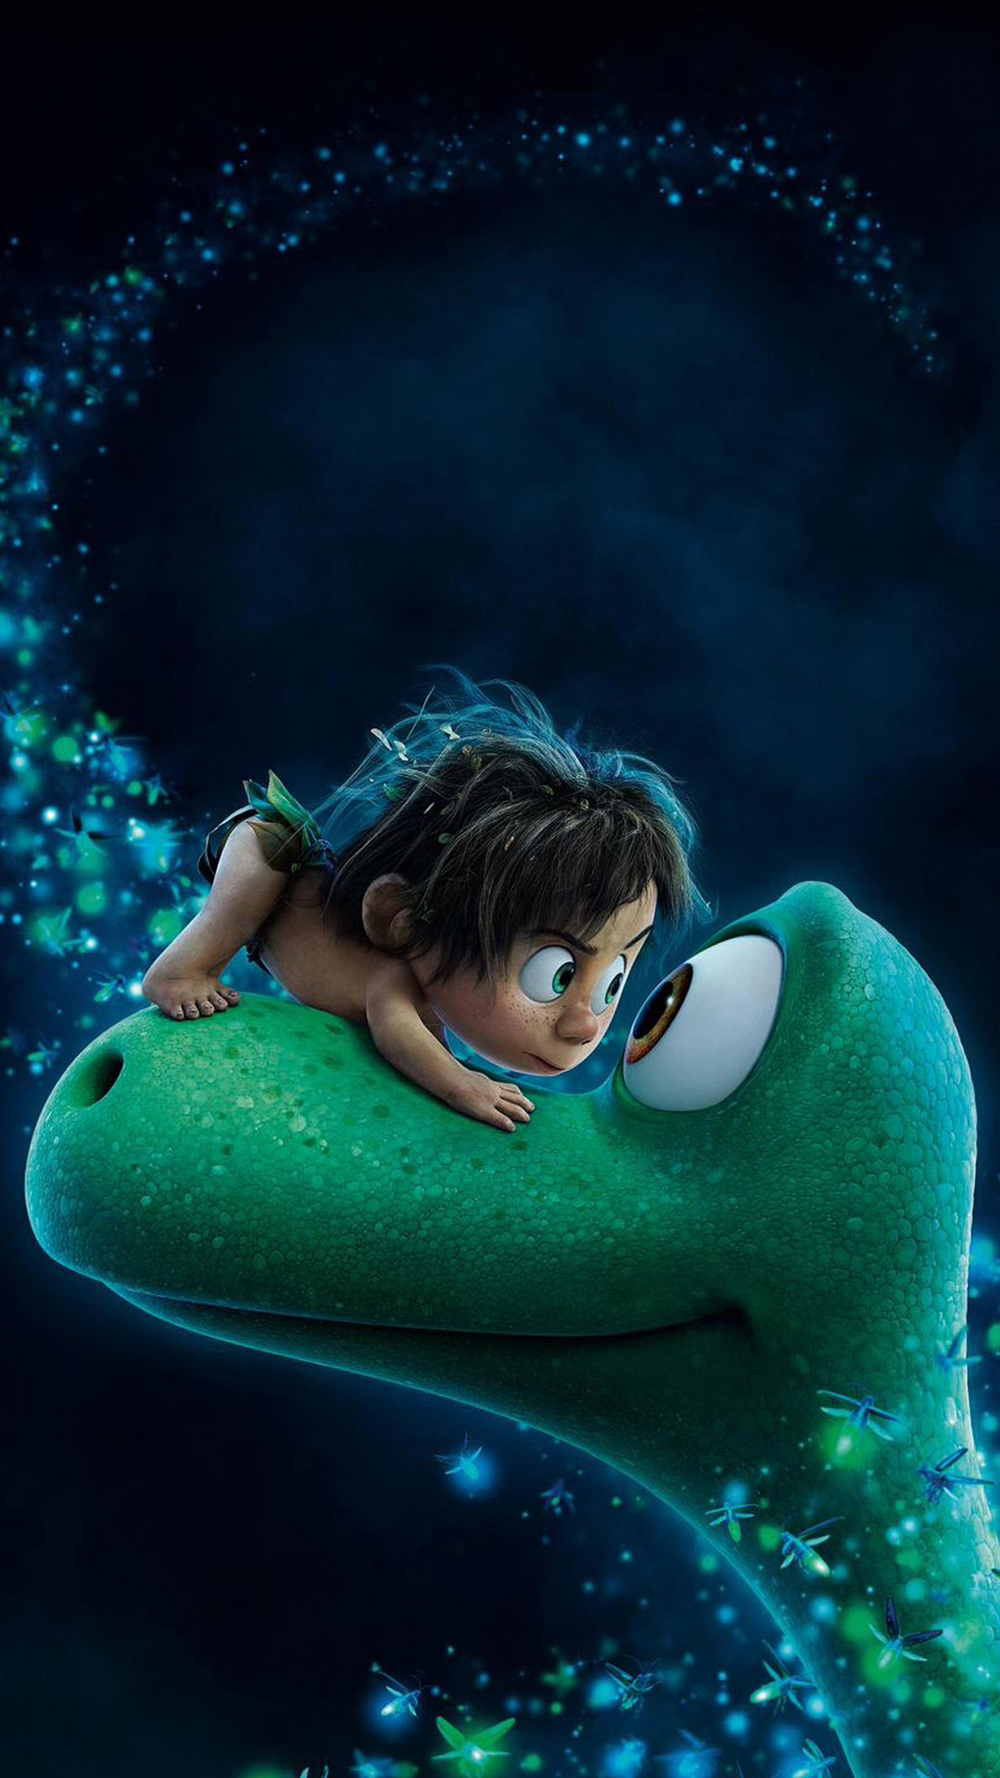 Samsung Galaxy Y Hd Love Wallpaper : The Good Dinosaur: Downloadable Wallpaper for iOS & Android Phones For The Love of Pixar